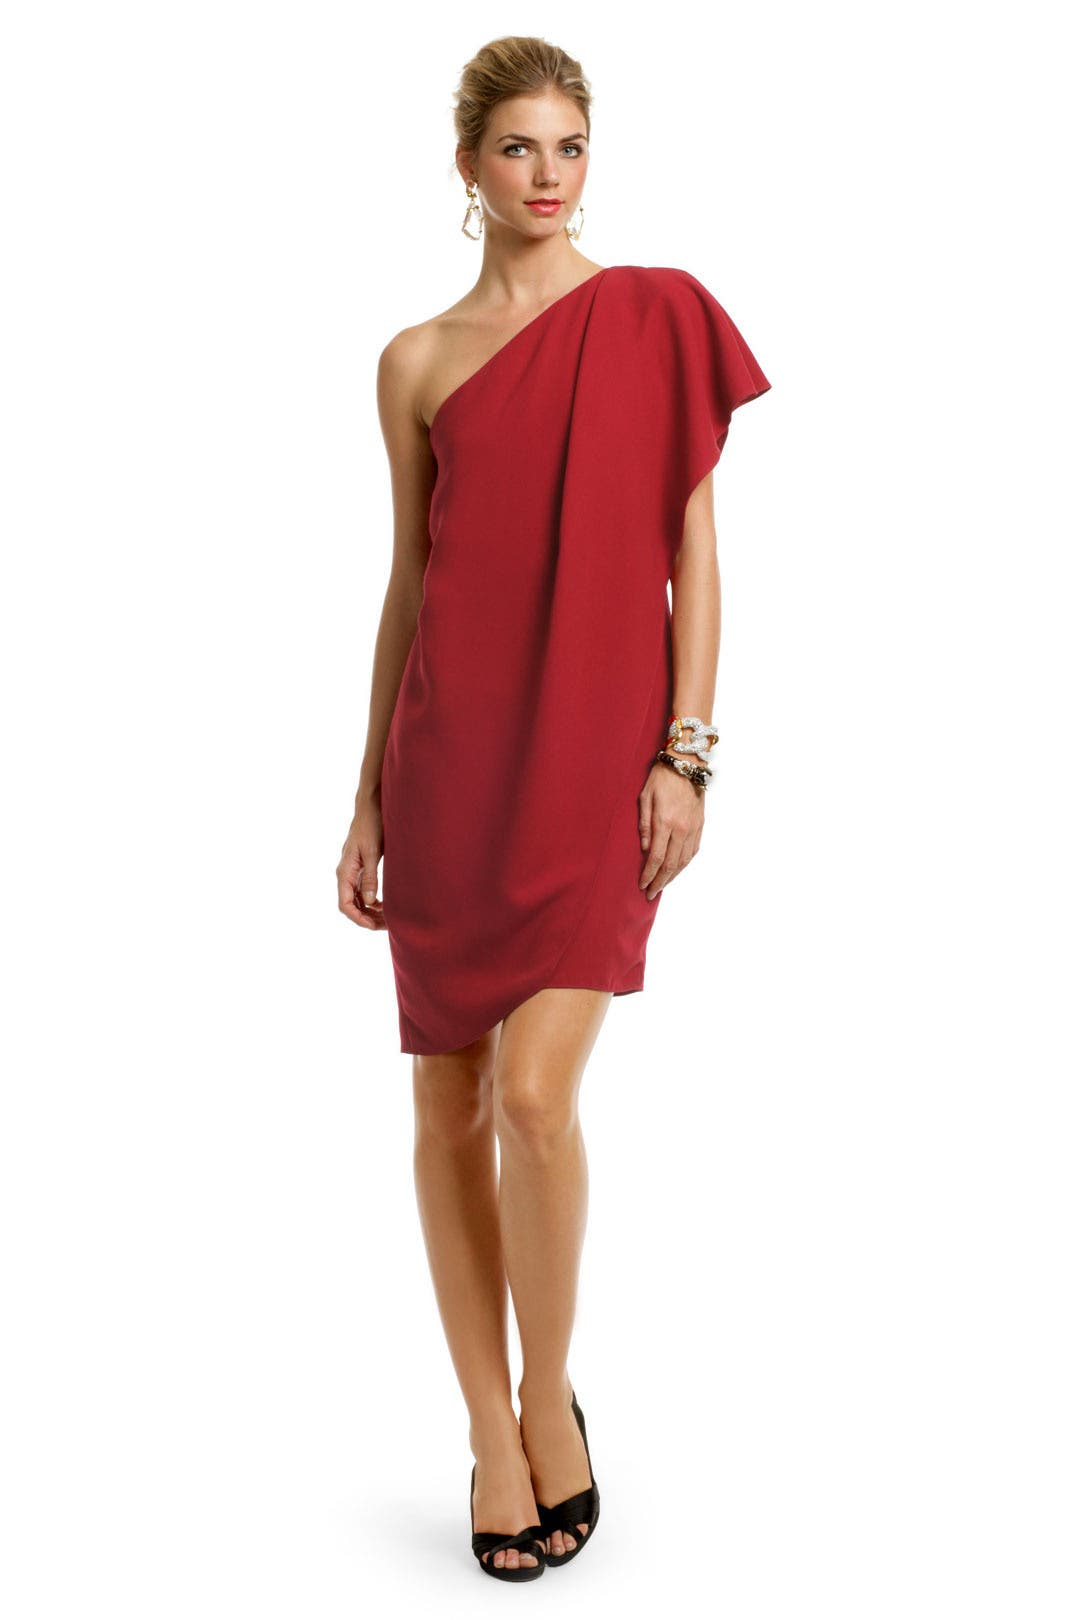 Crimson Catwalk Dress by Mark & James by Badgley Mischka